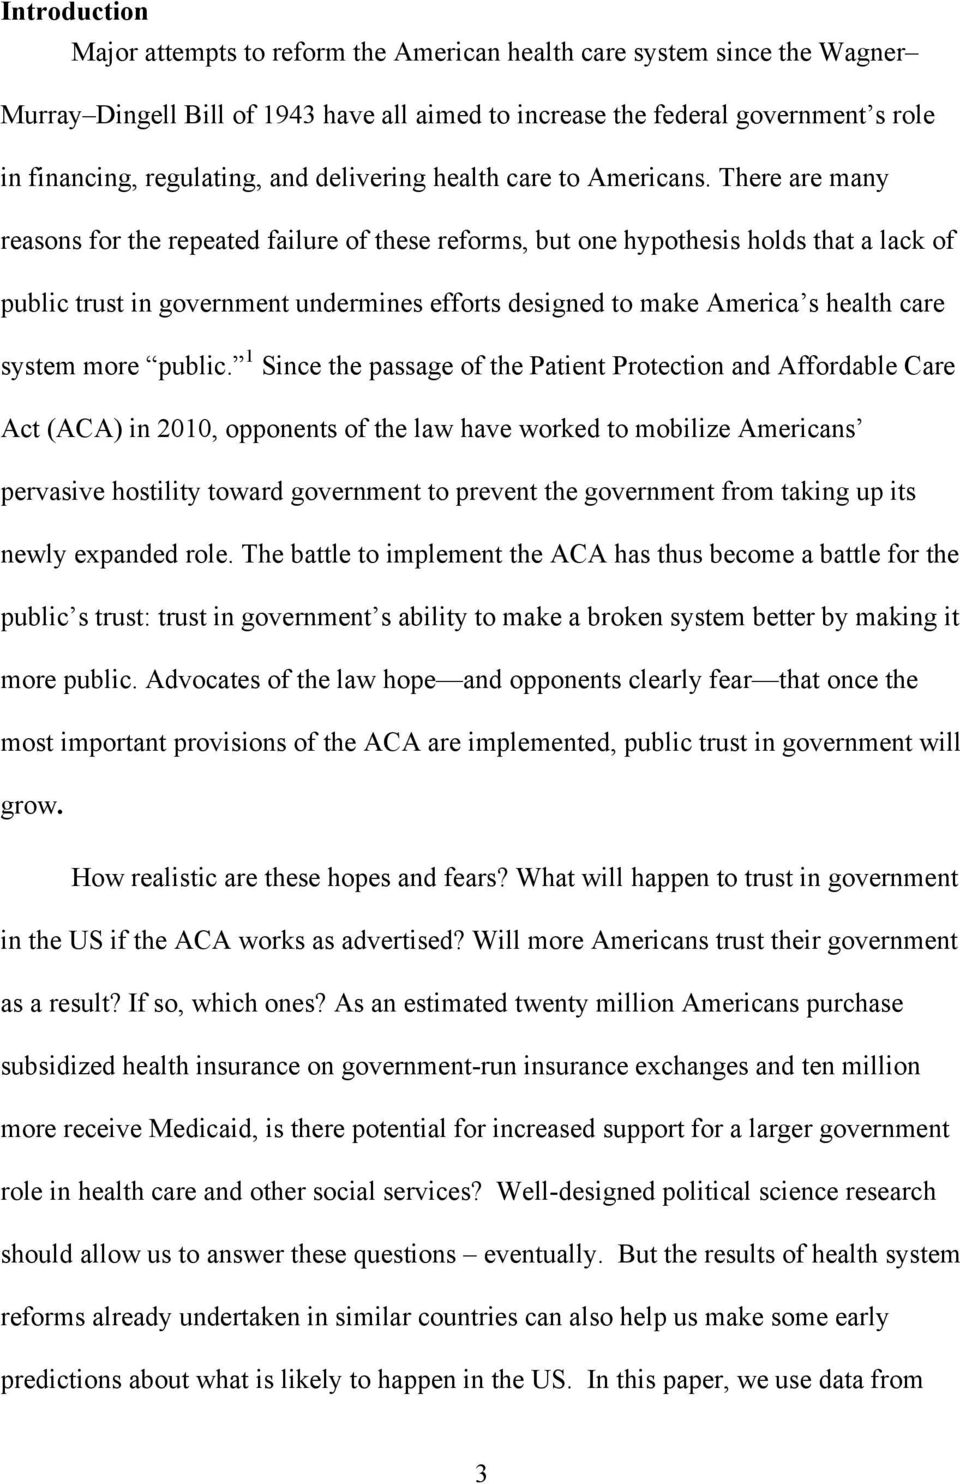 There are many reasons for the repeated failure of these reforms, but one hypothesis holds that a lack of public trust in government undermines efforts designed to make America s health care system